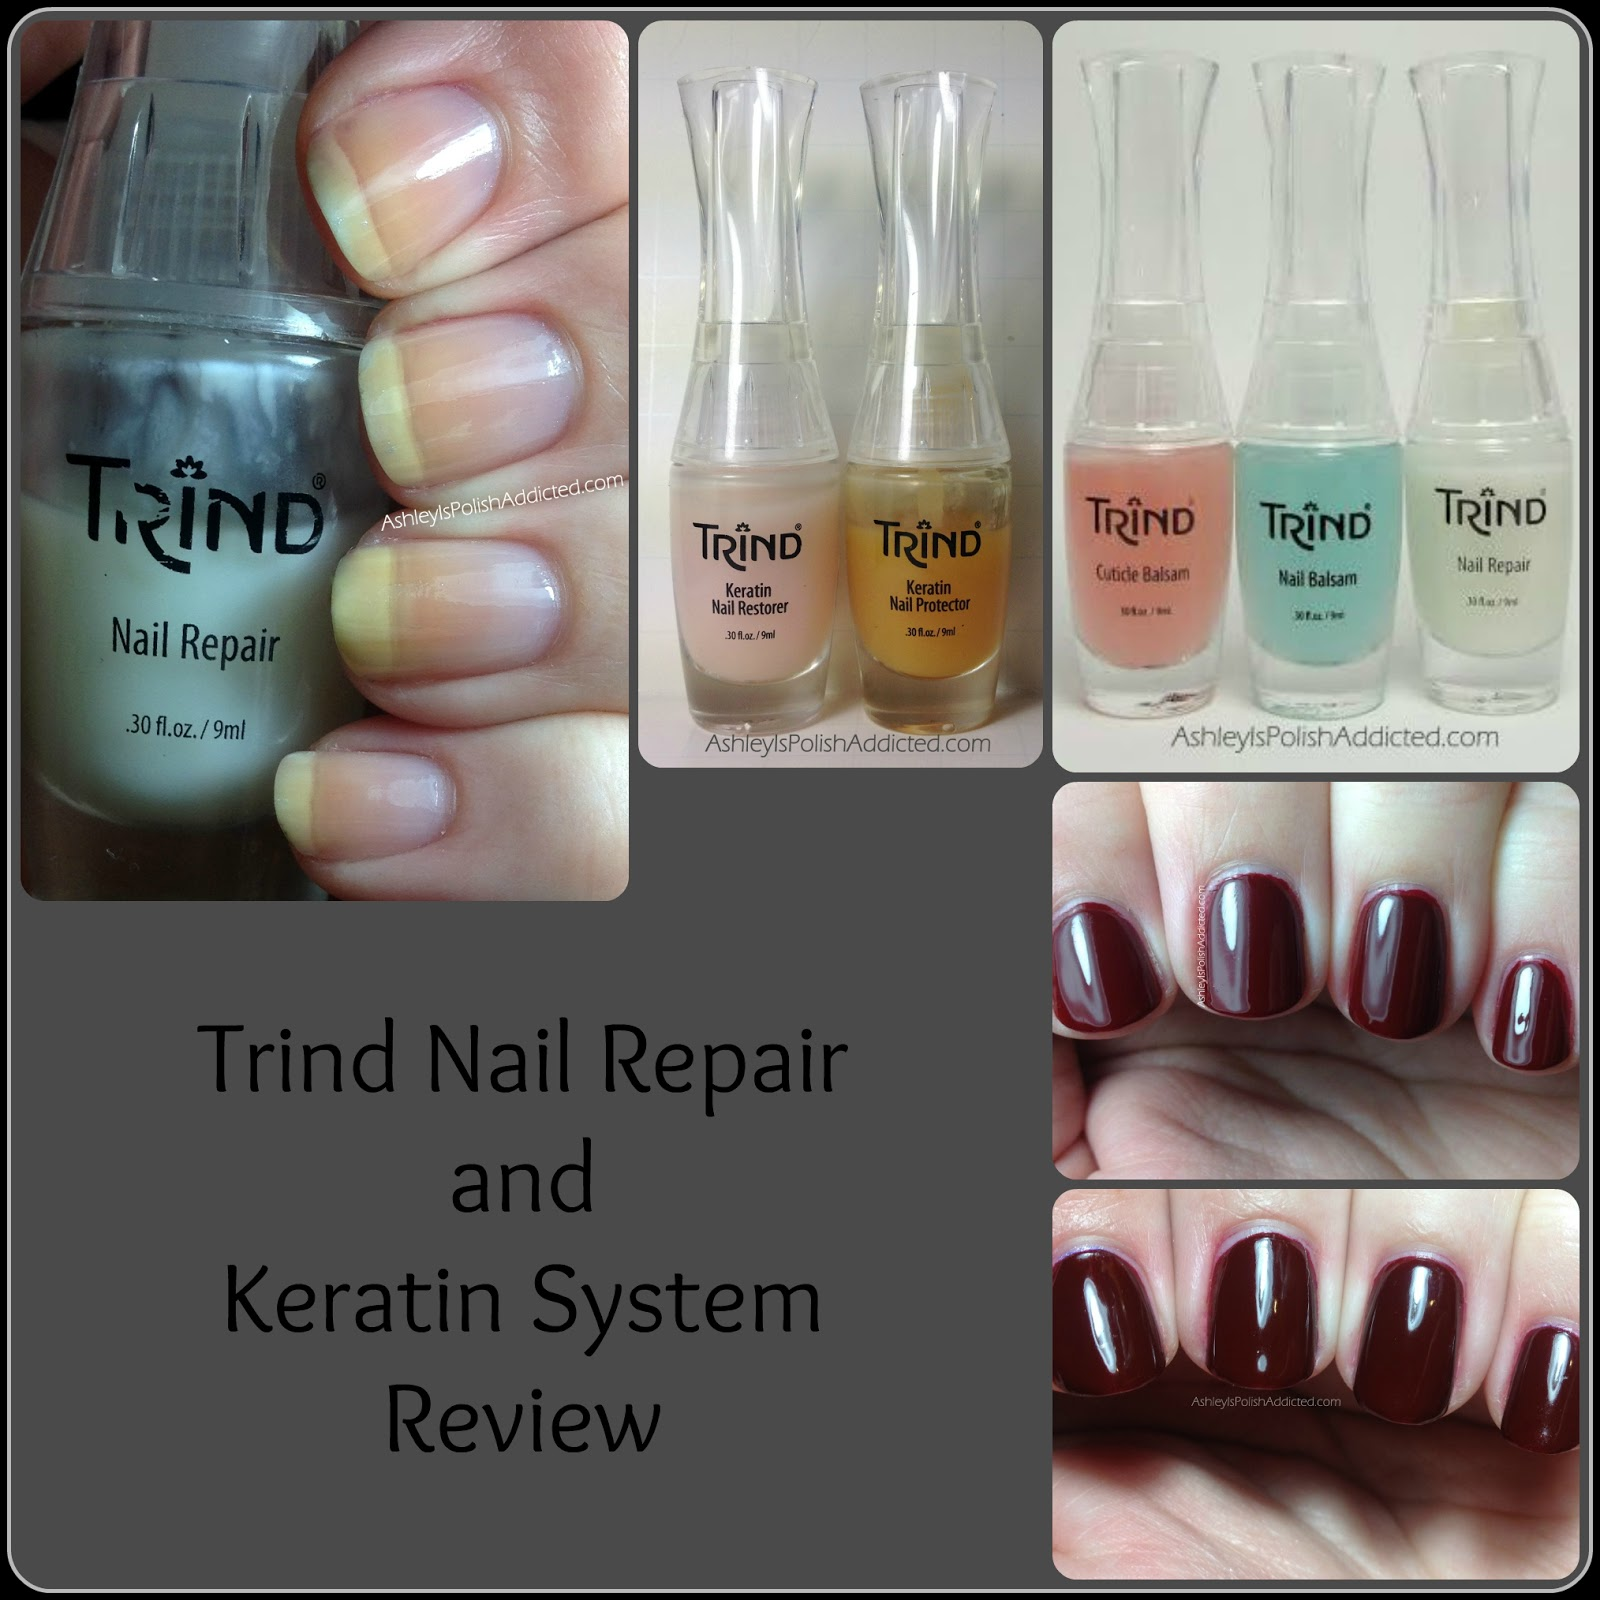 Ashley is PolishAddicted: Trind Nail Care - Keratin Treatment Kit ...